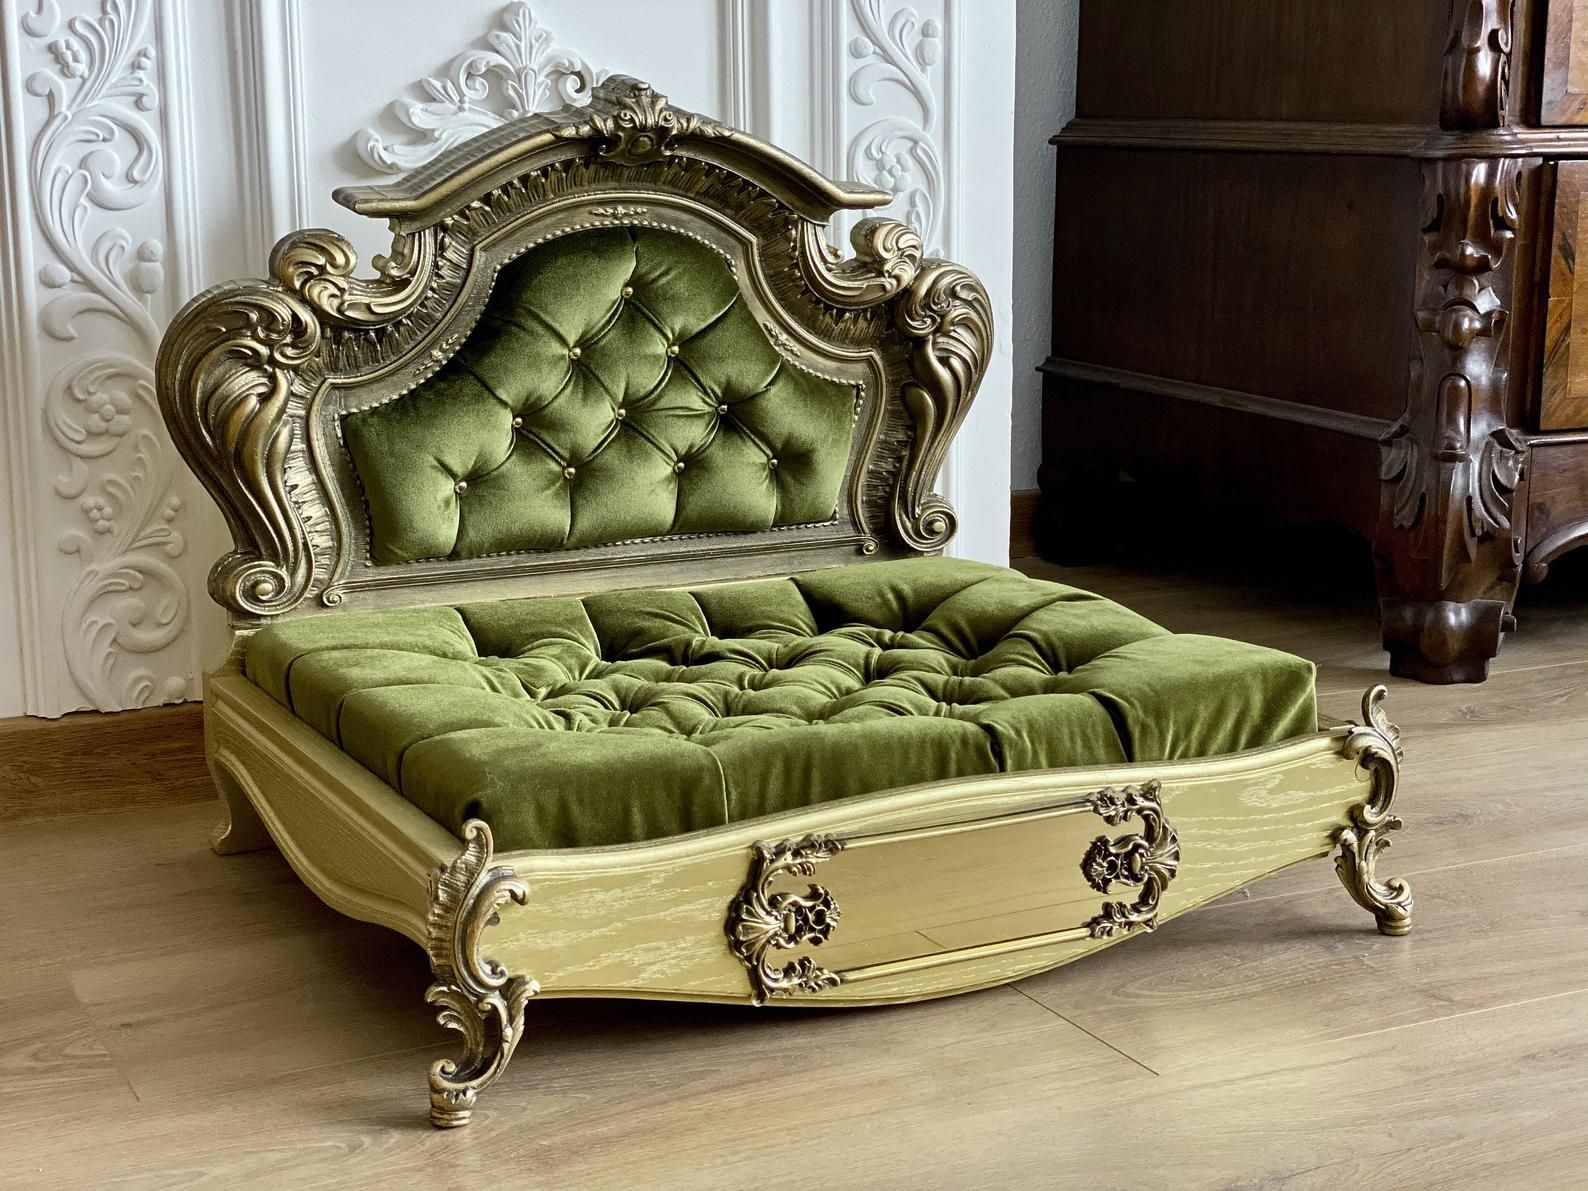 Gold Baroque Oak Pet bed, Dog bed, Pet Furniture, Luxury